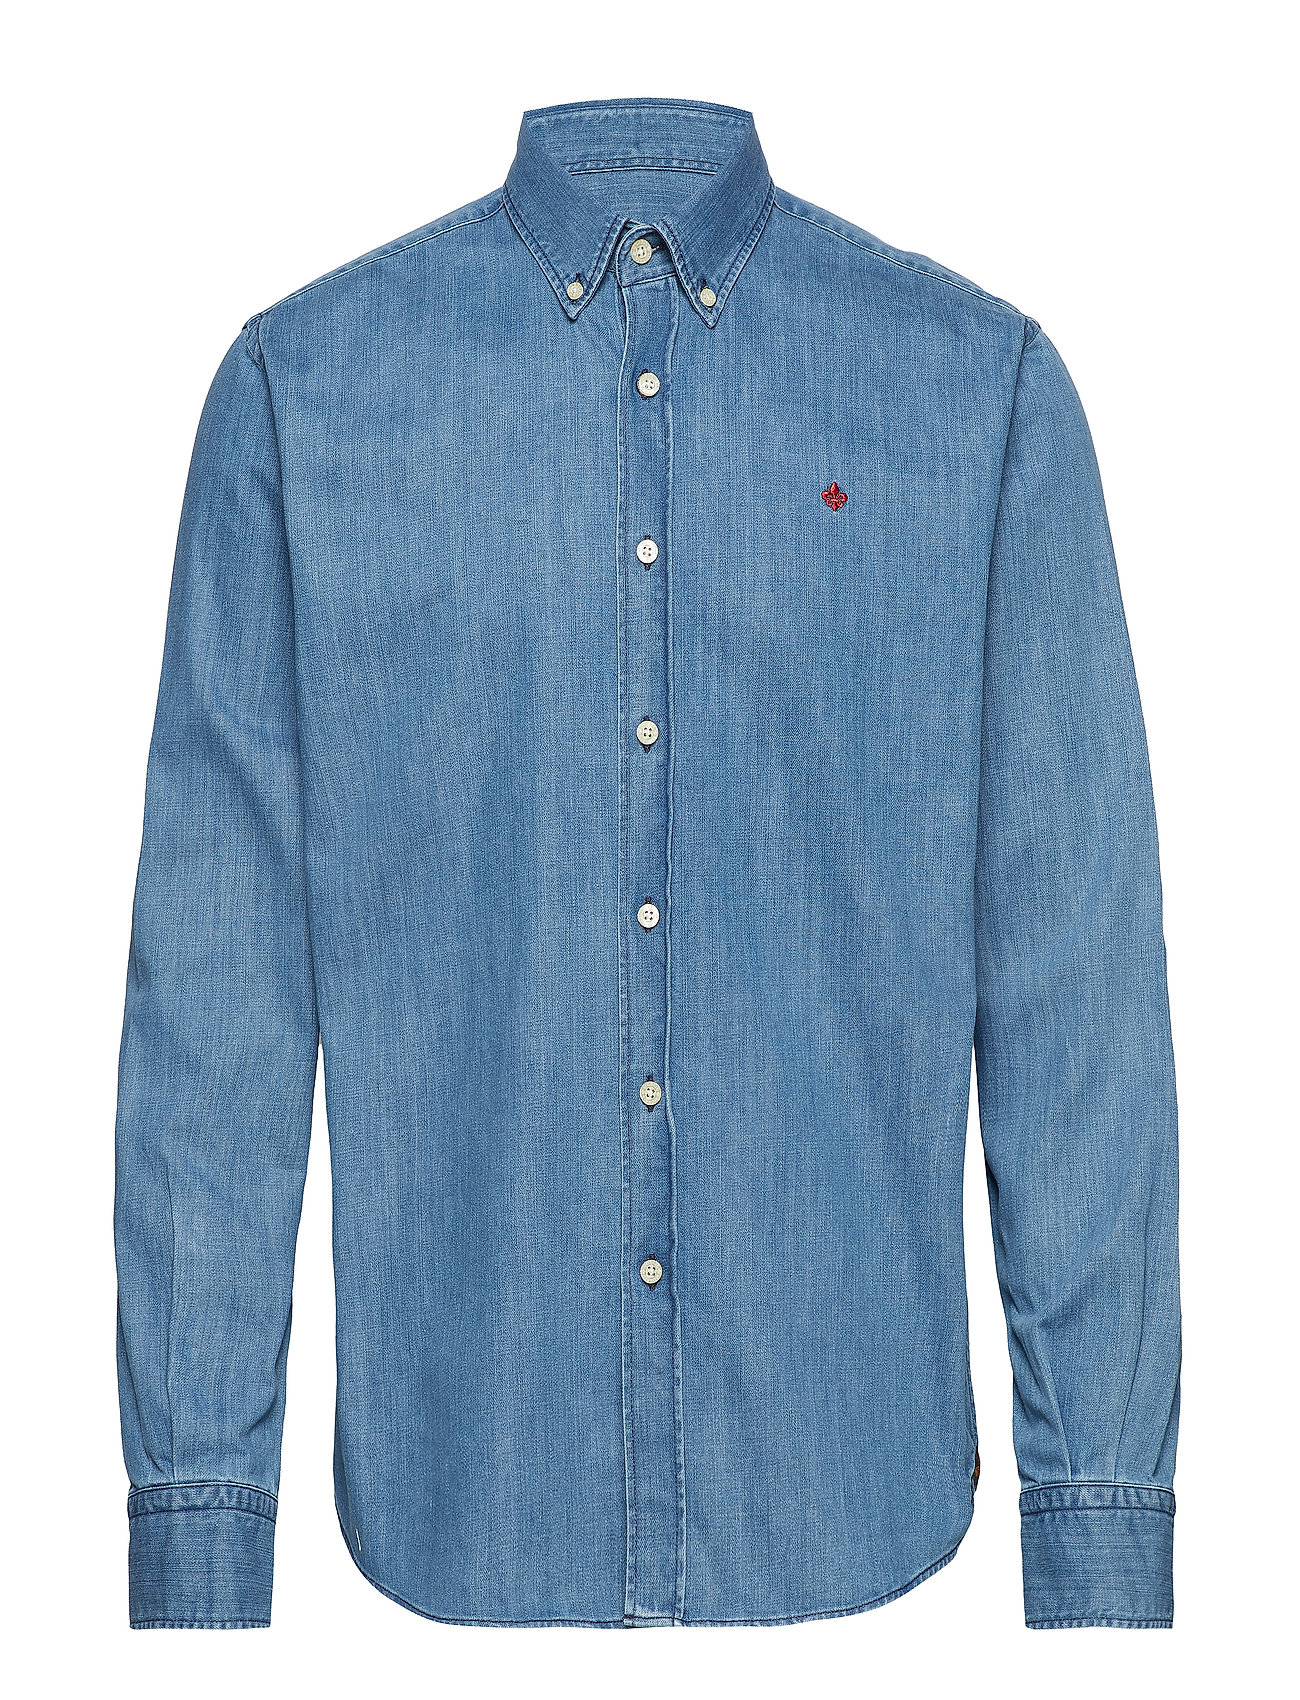 Morris Cary Grant Denim Shirt - LIGHT BLUE